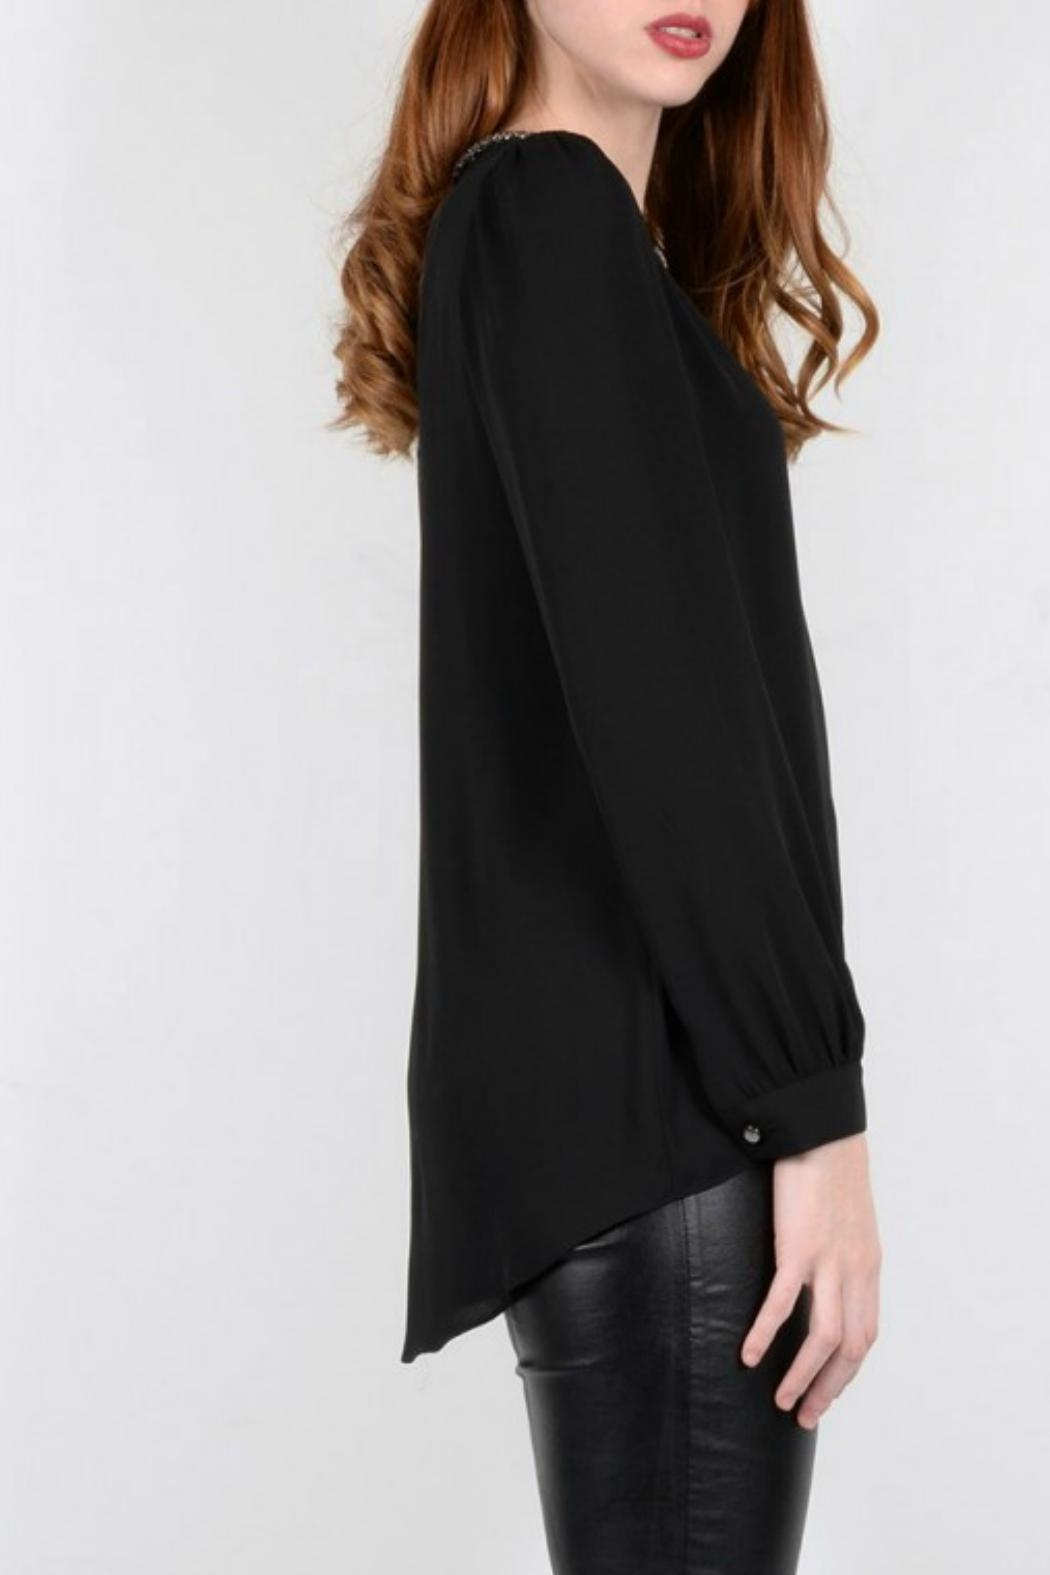 Molly Bracken Pullover Dressy Blouse - Side Cropped Image